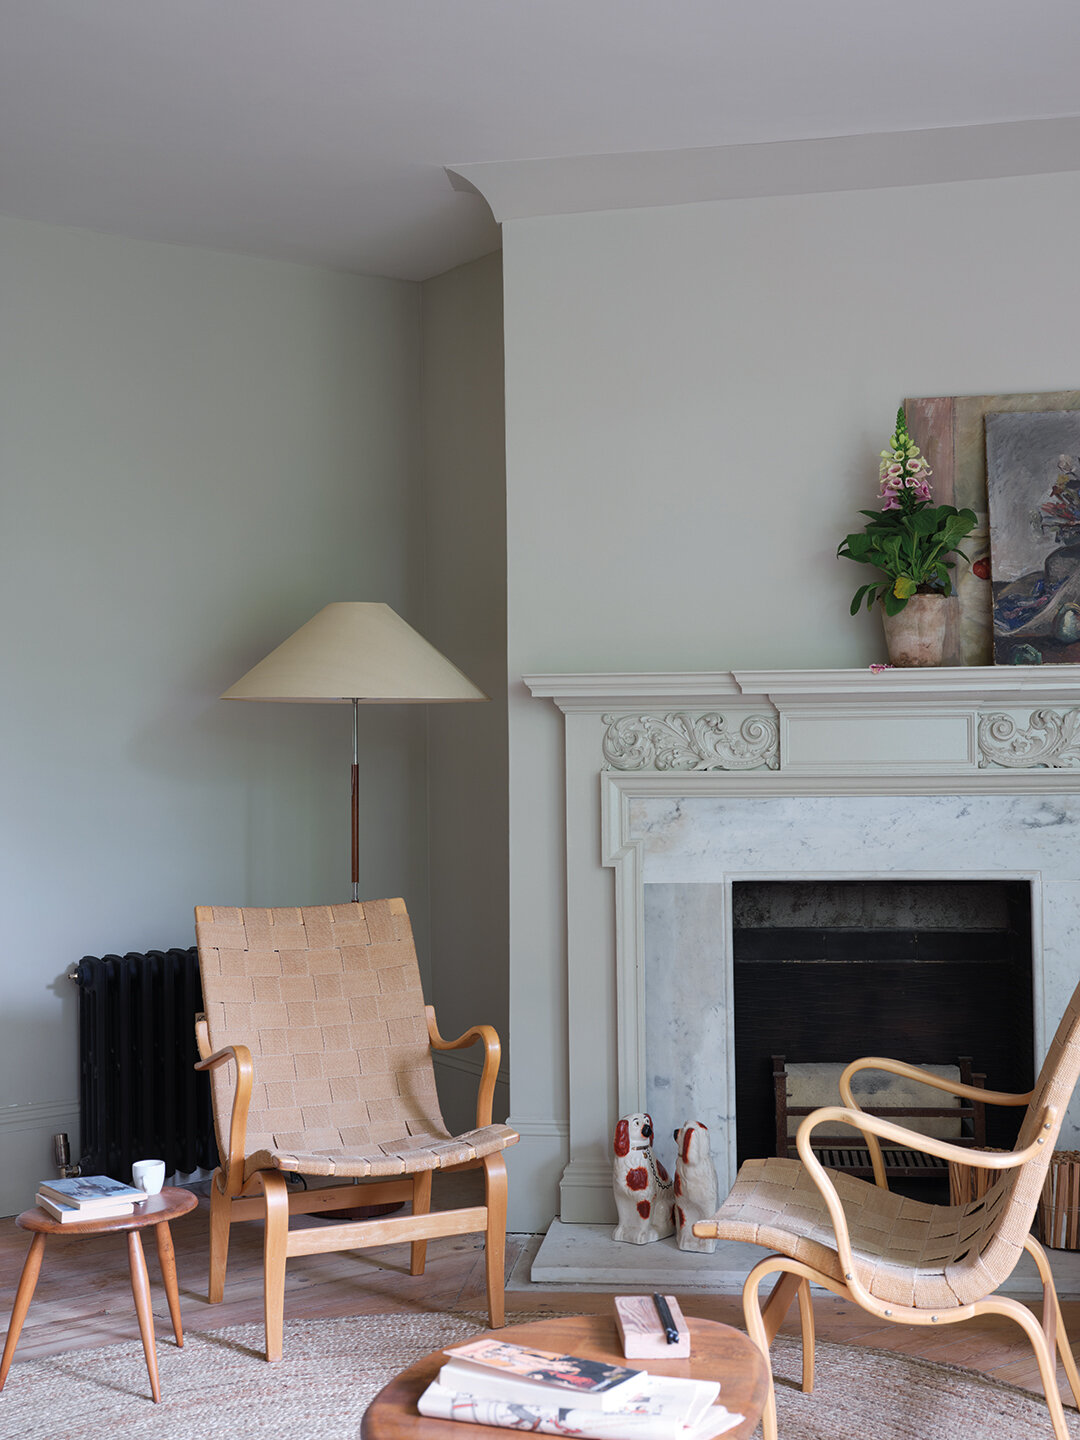 Broccoli Brown, Lake Red, Scotch Blue, Skimmed Milk White, Ash Grey, all Farrow & Ball. Image Credit: Farrow &Ball